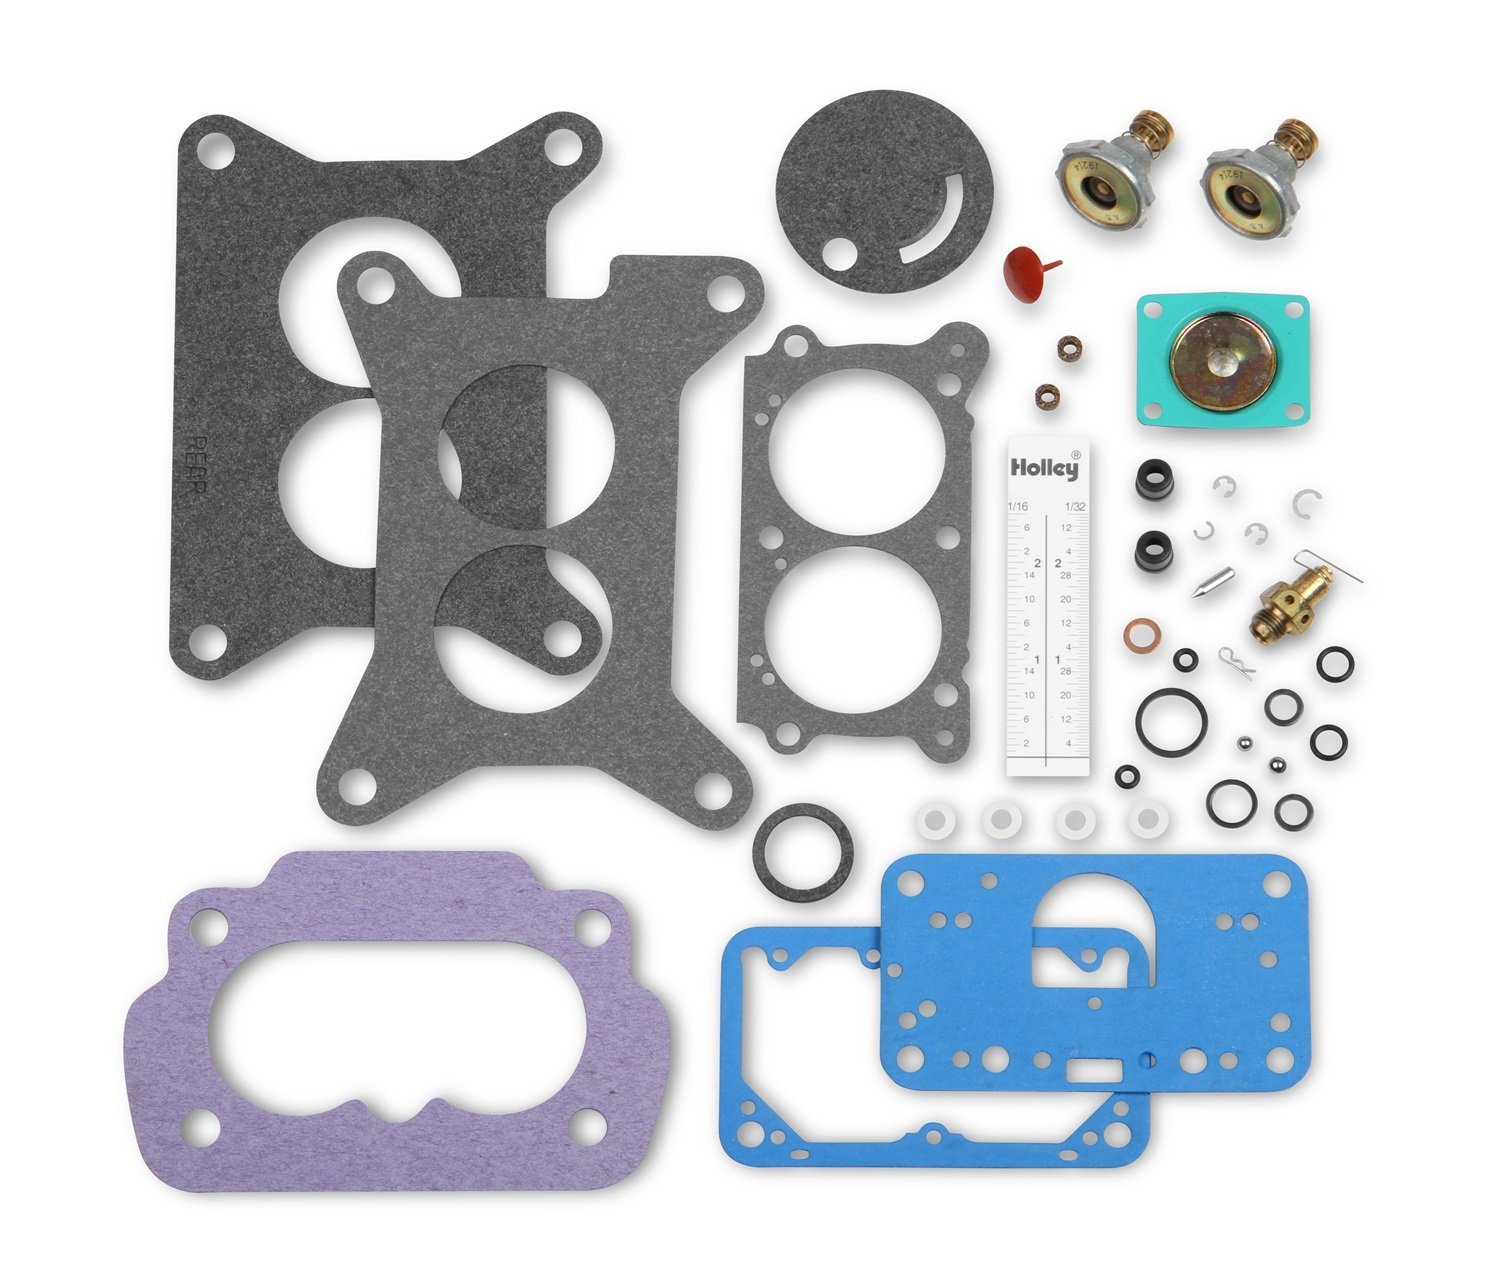 Holley 703-36 Marine Carburetor Rebuild Kit HOL 703-36